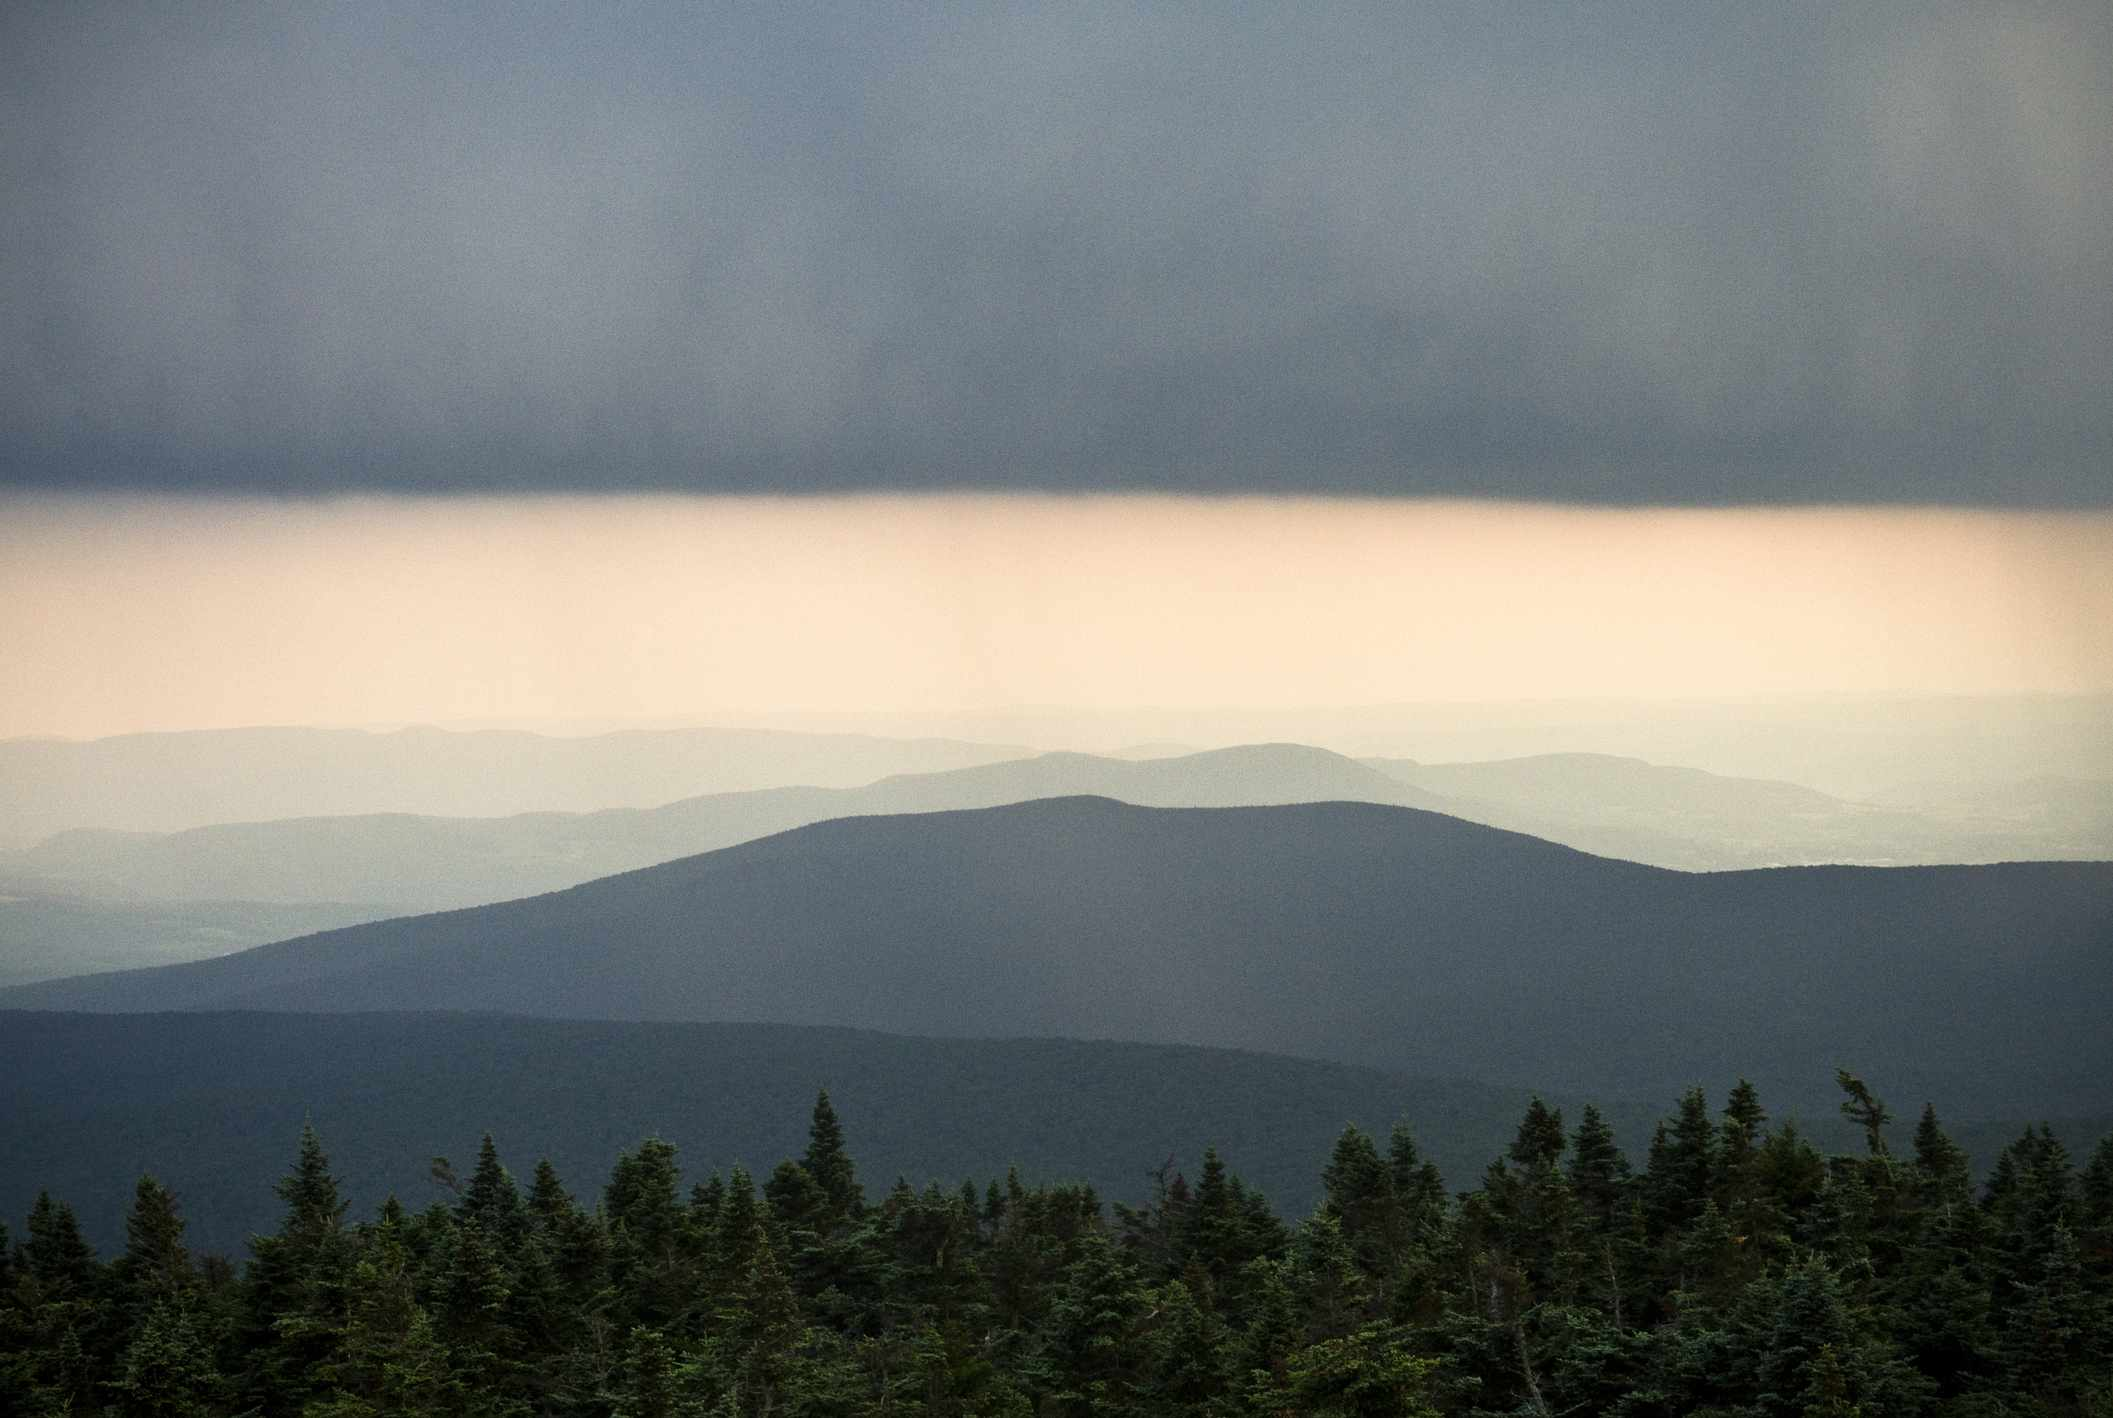 A storm passes over the Appalachian Mountains in Vermont.